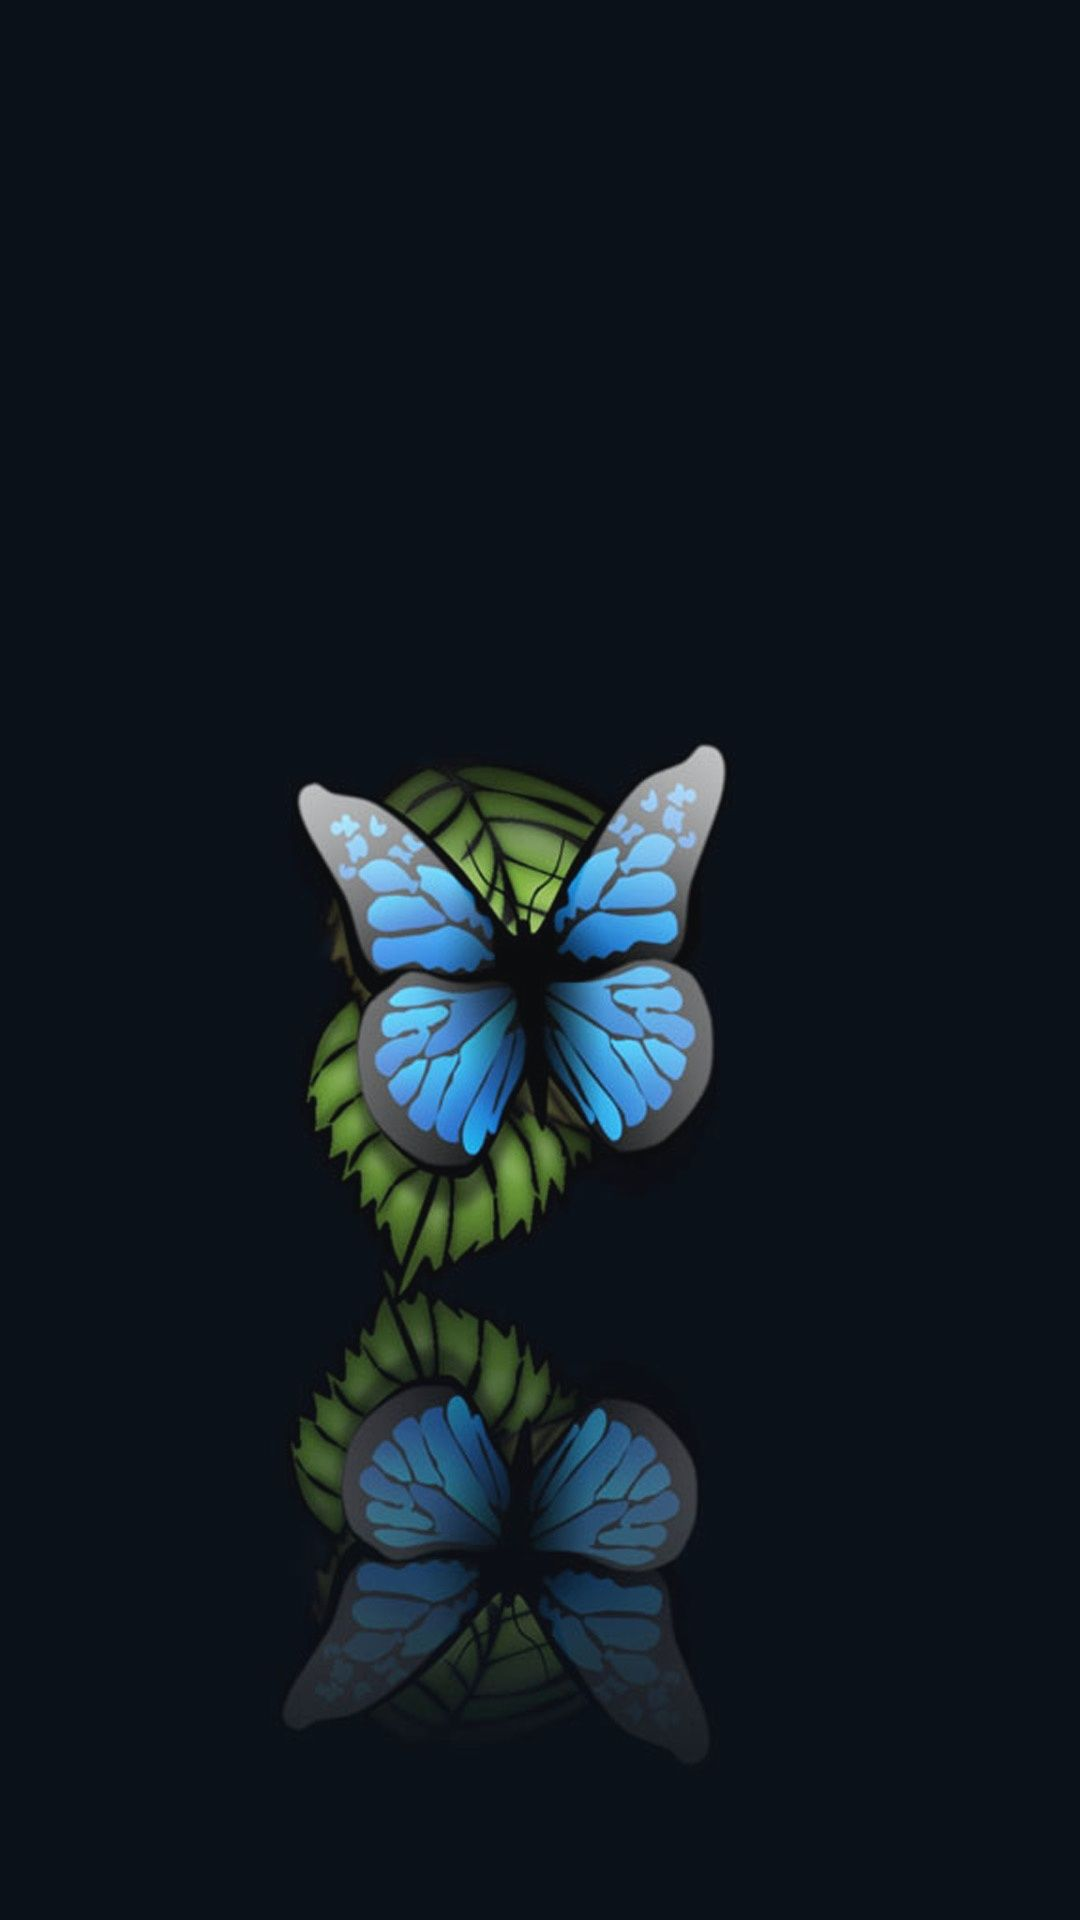 Blue Butterfly Black Background iPhone 6 Plus HD Wallpaper